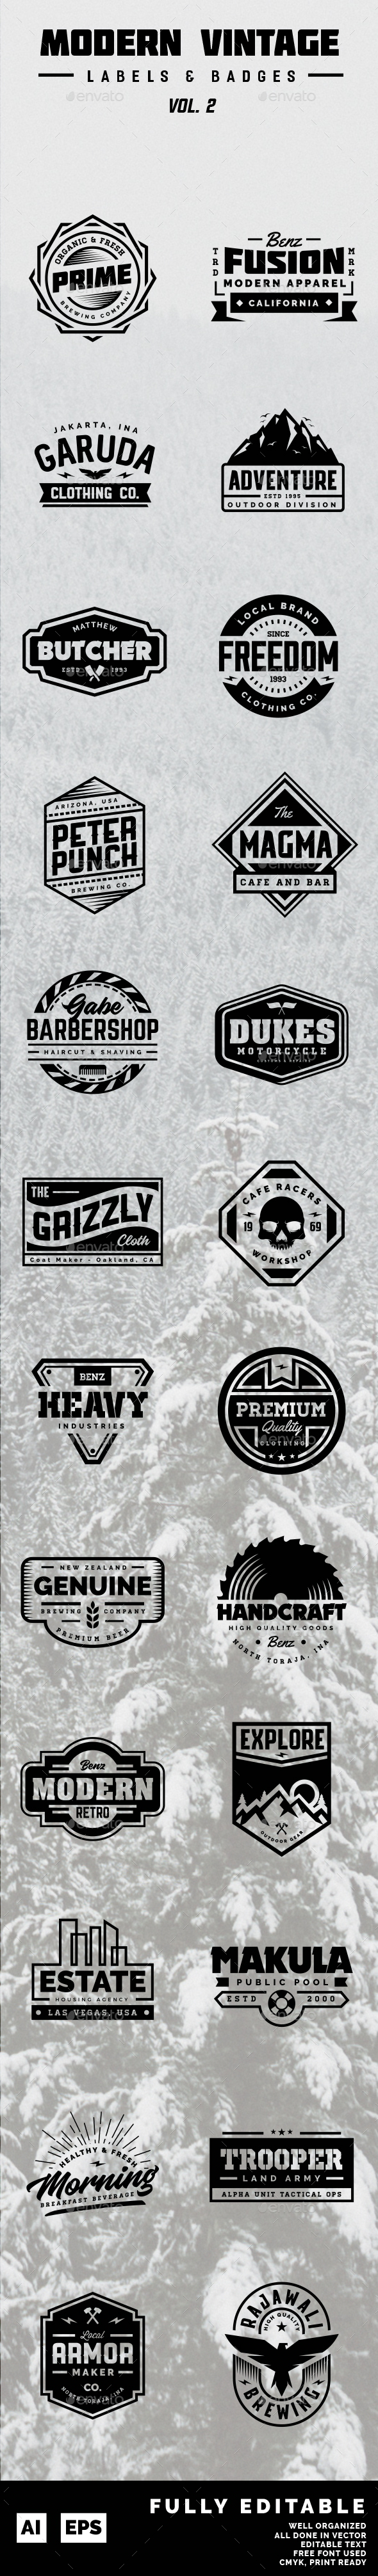 Modern Vintage Label and Badges Vol 2 - Badges & Stickers Web Elements